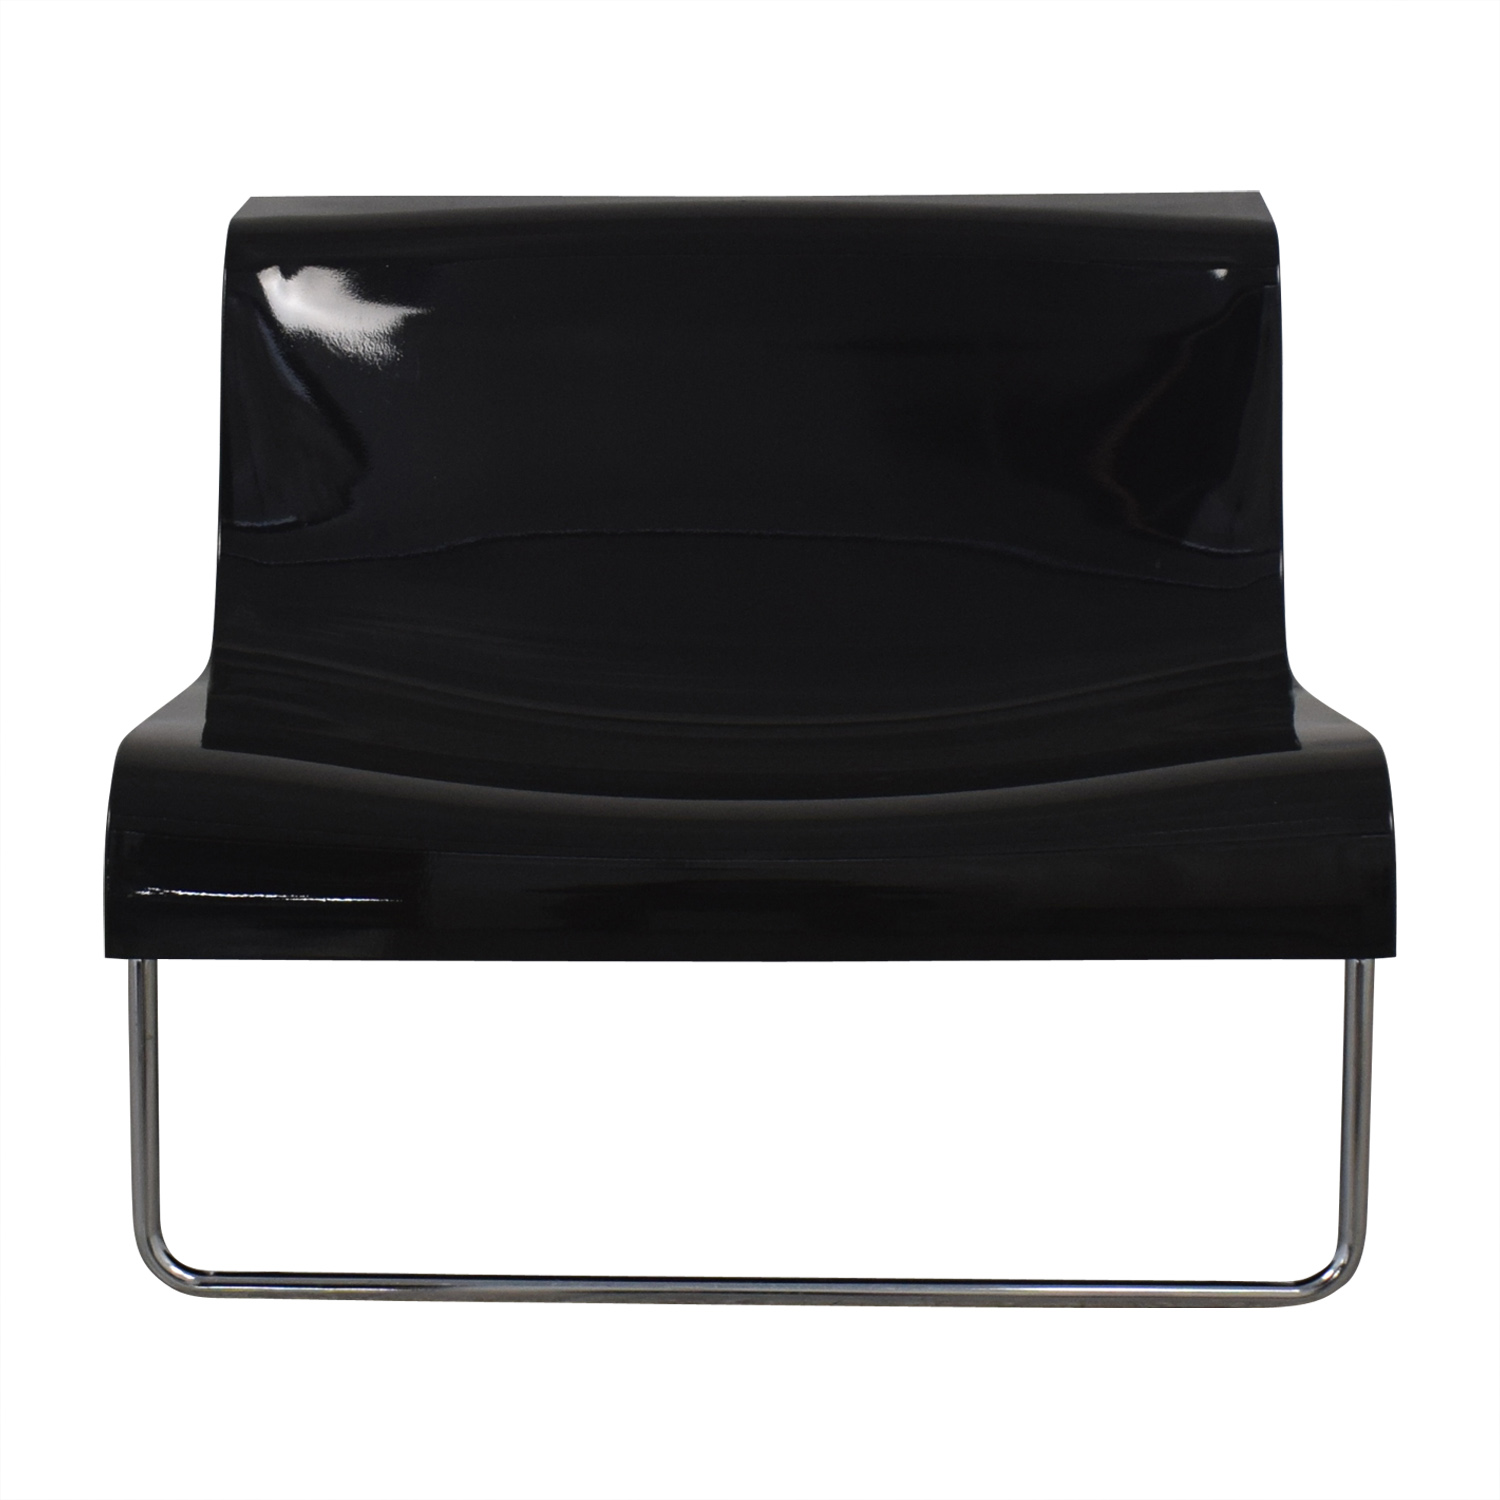 Kartell Kartell Form Chair by Piero Lissoni price